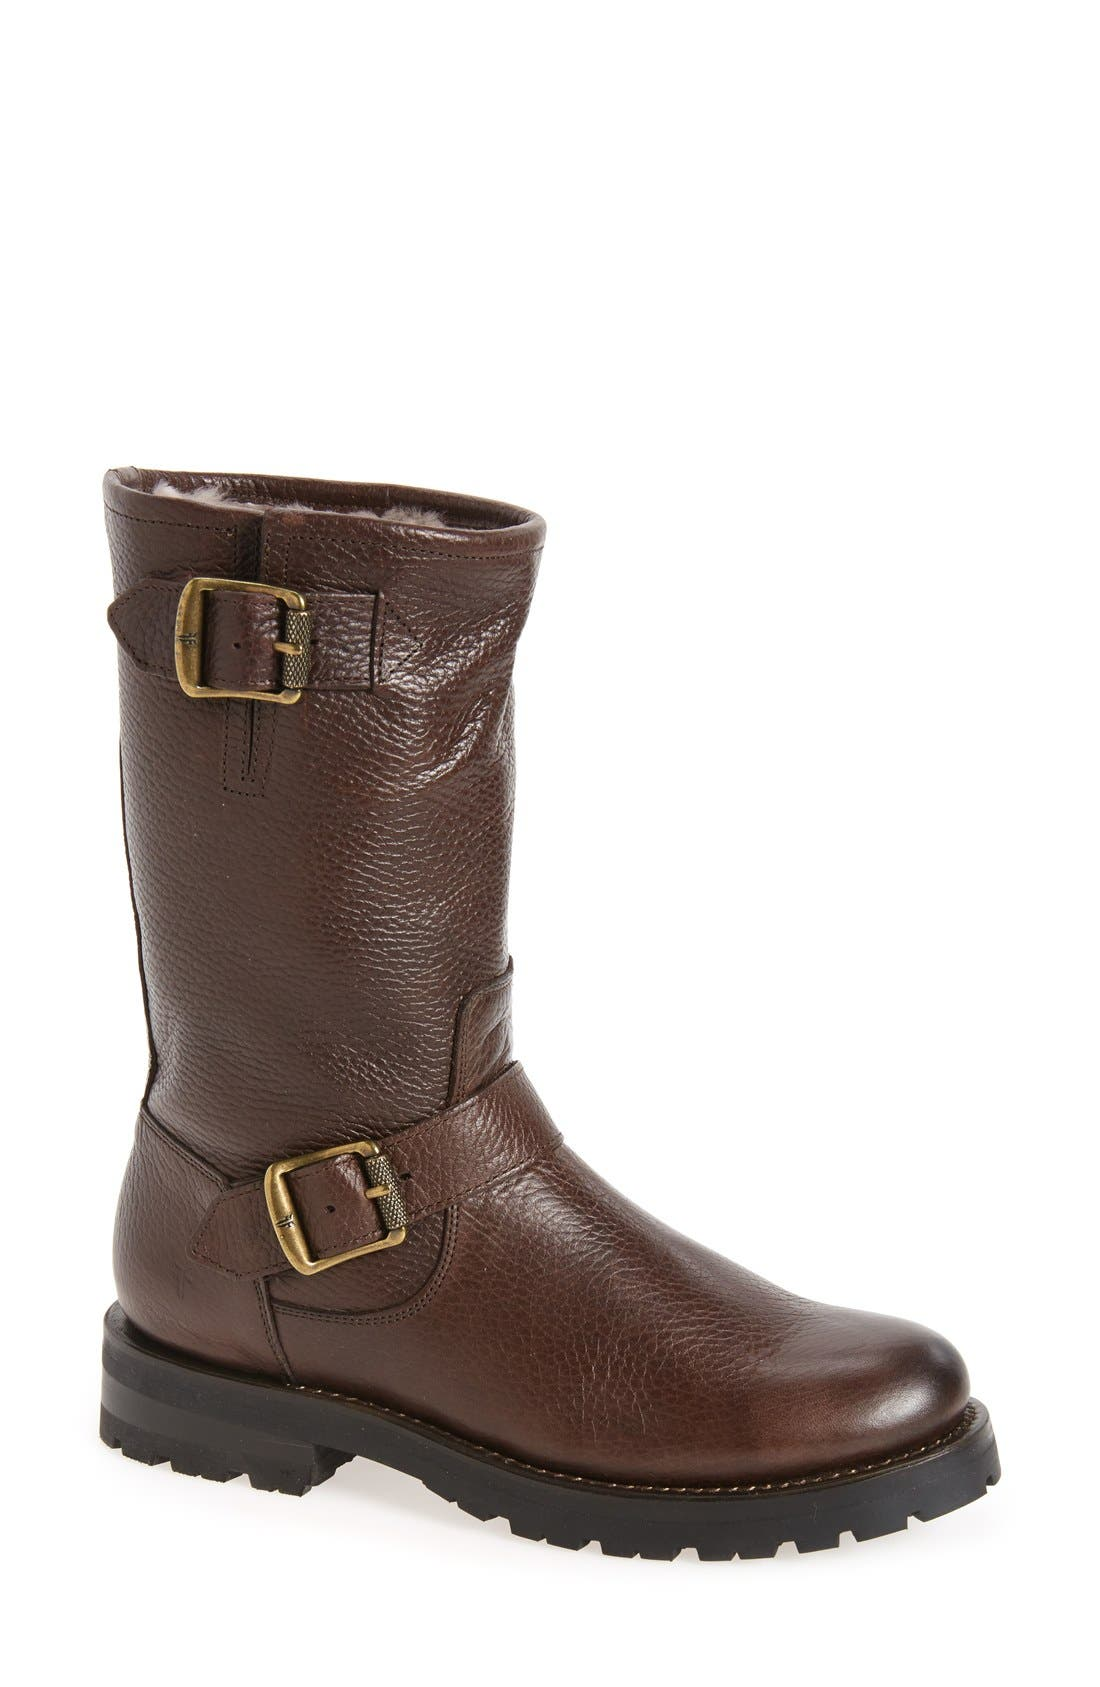 Natalie Buckle Strap Engineer Genuine Shearling Lined Boot,                             Main thumbnail 1, color,                             200